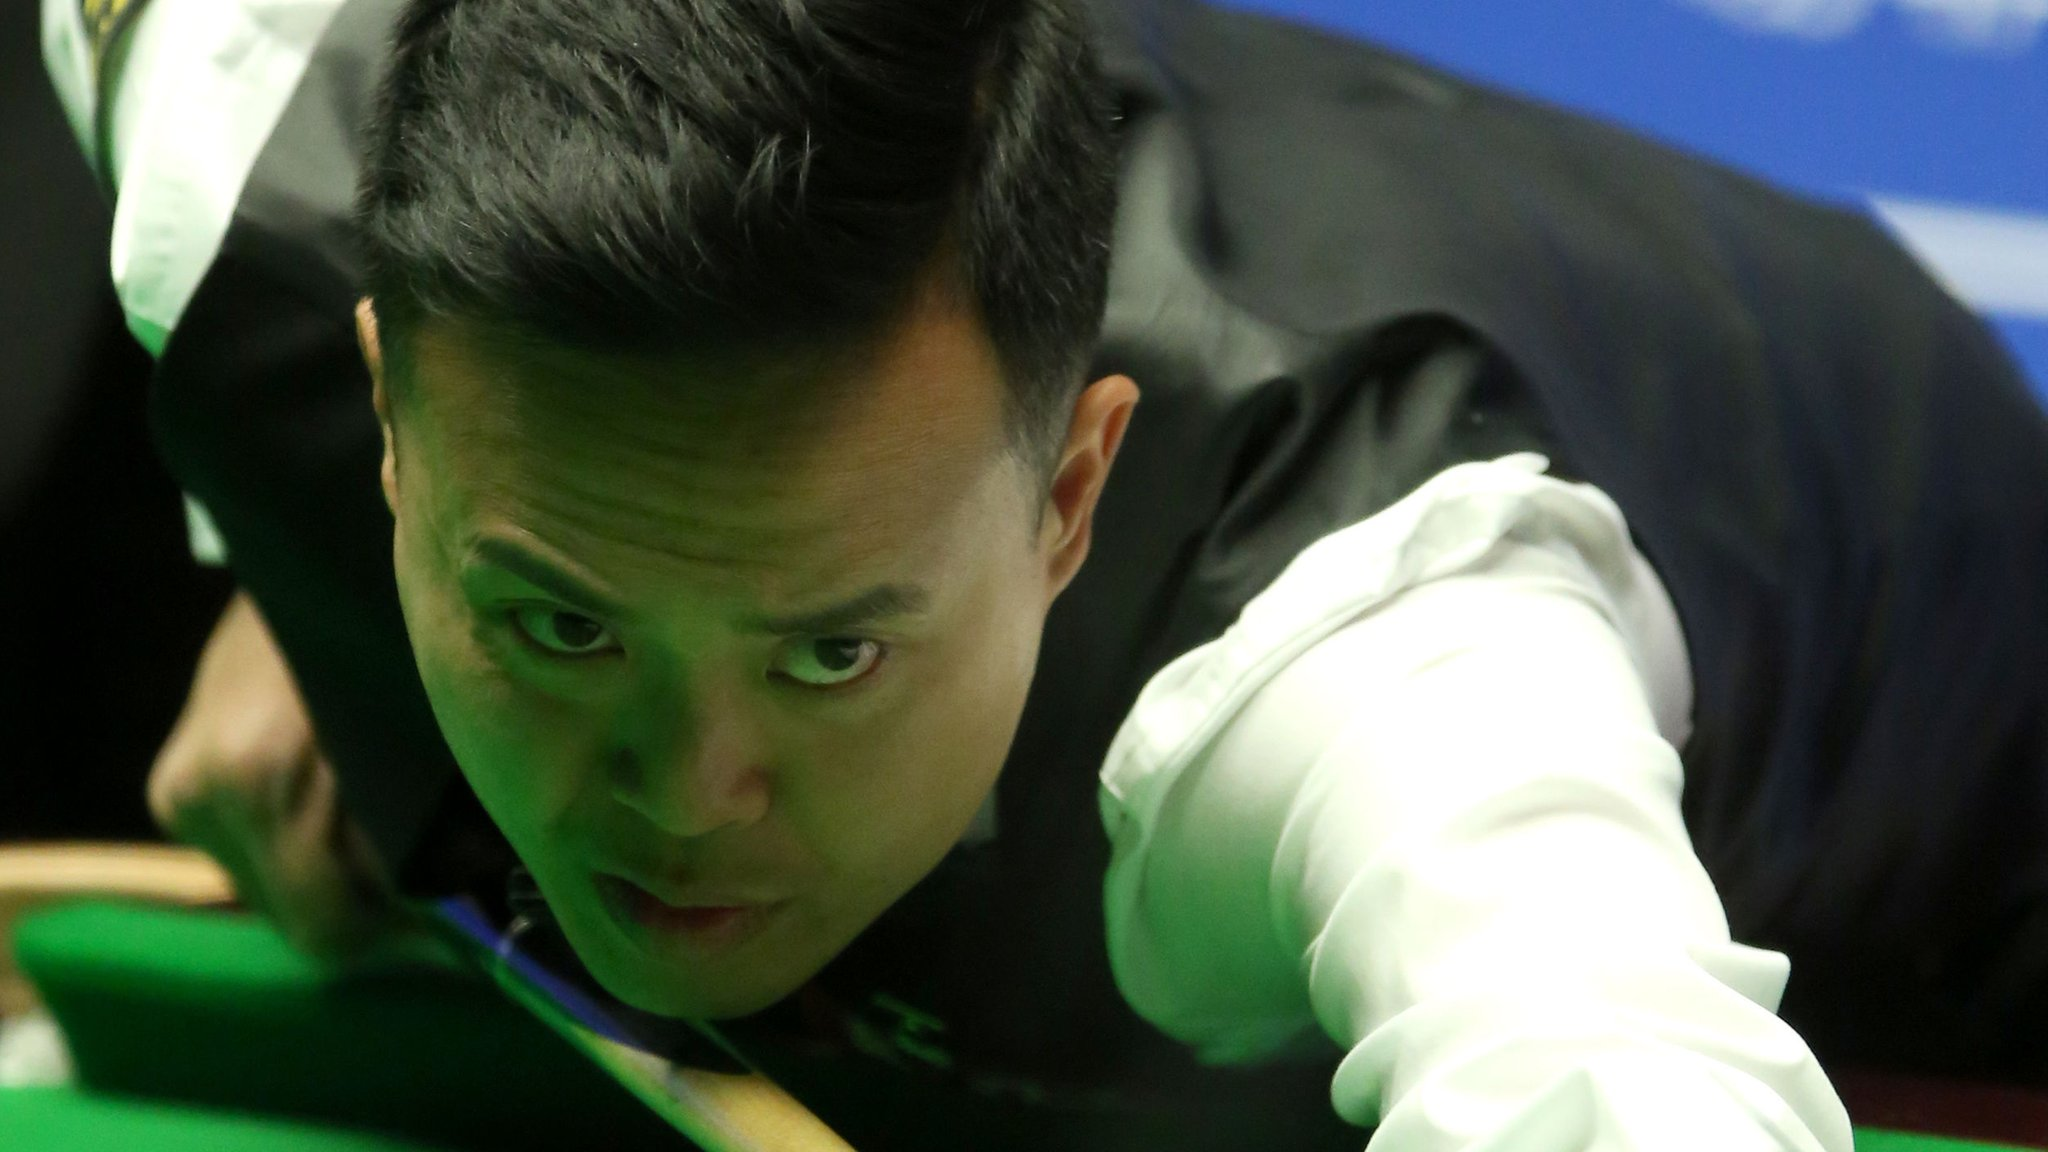 World Championship 2017: Marco Fu beats Neil Robertson, faces Mark Selby next